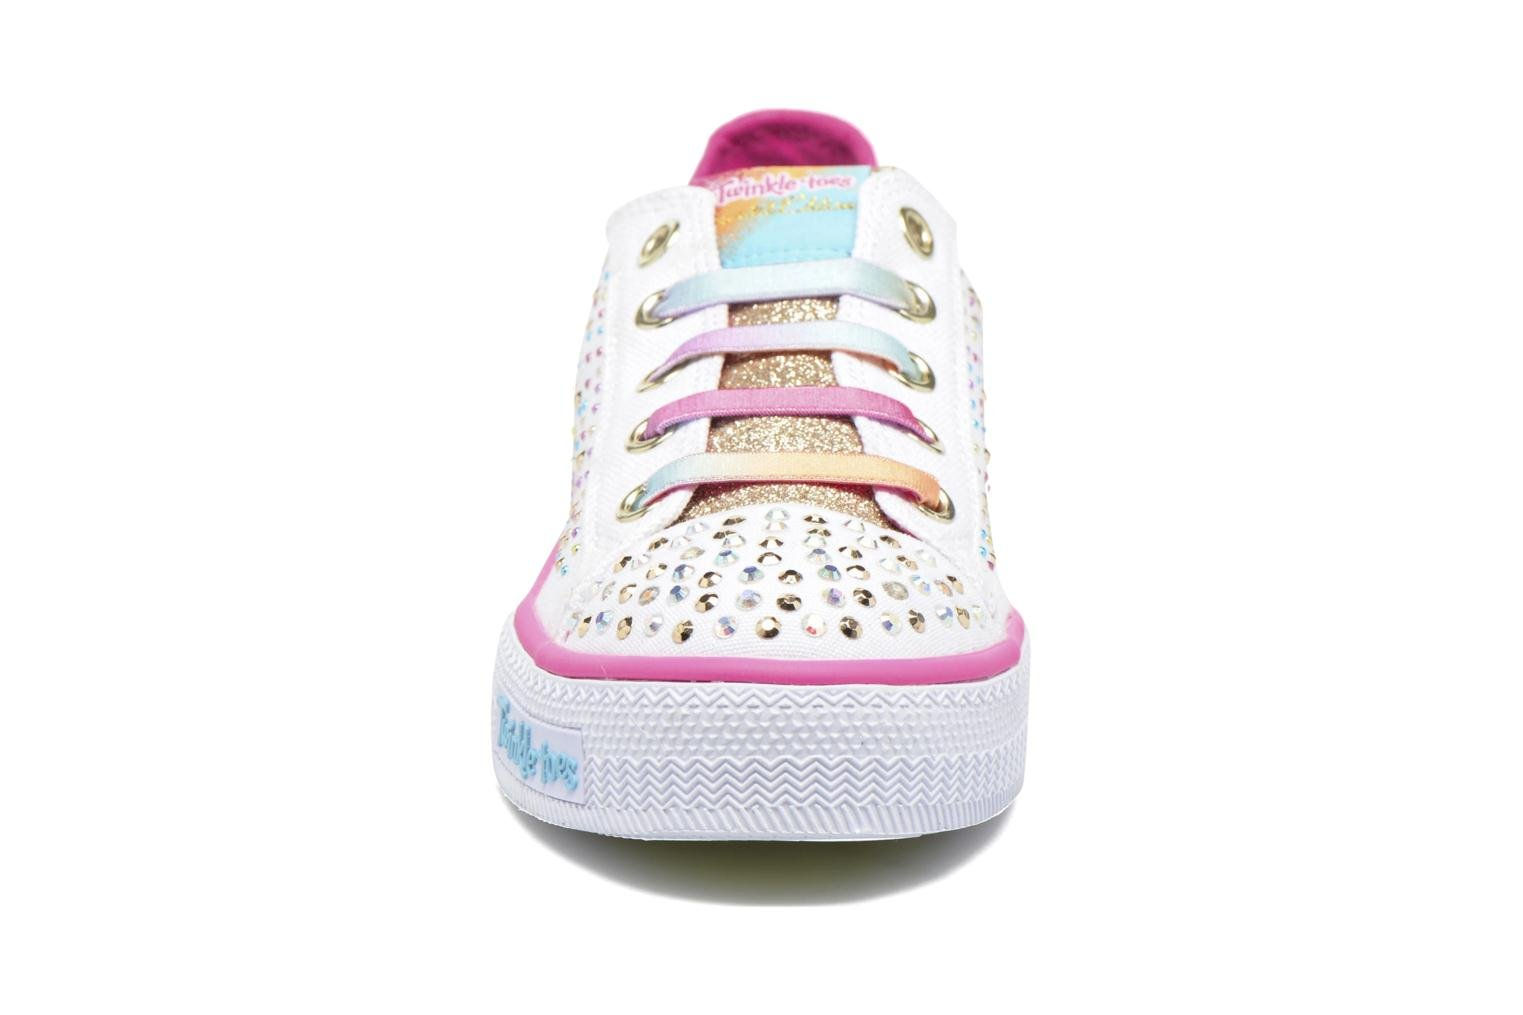 Shuffles Twirly Toes White/multicolor